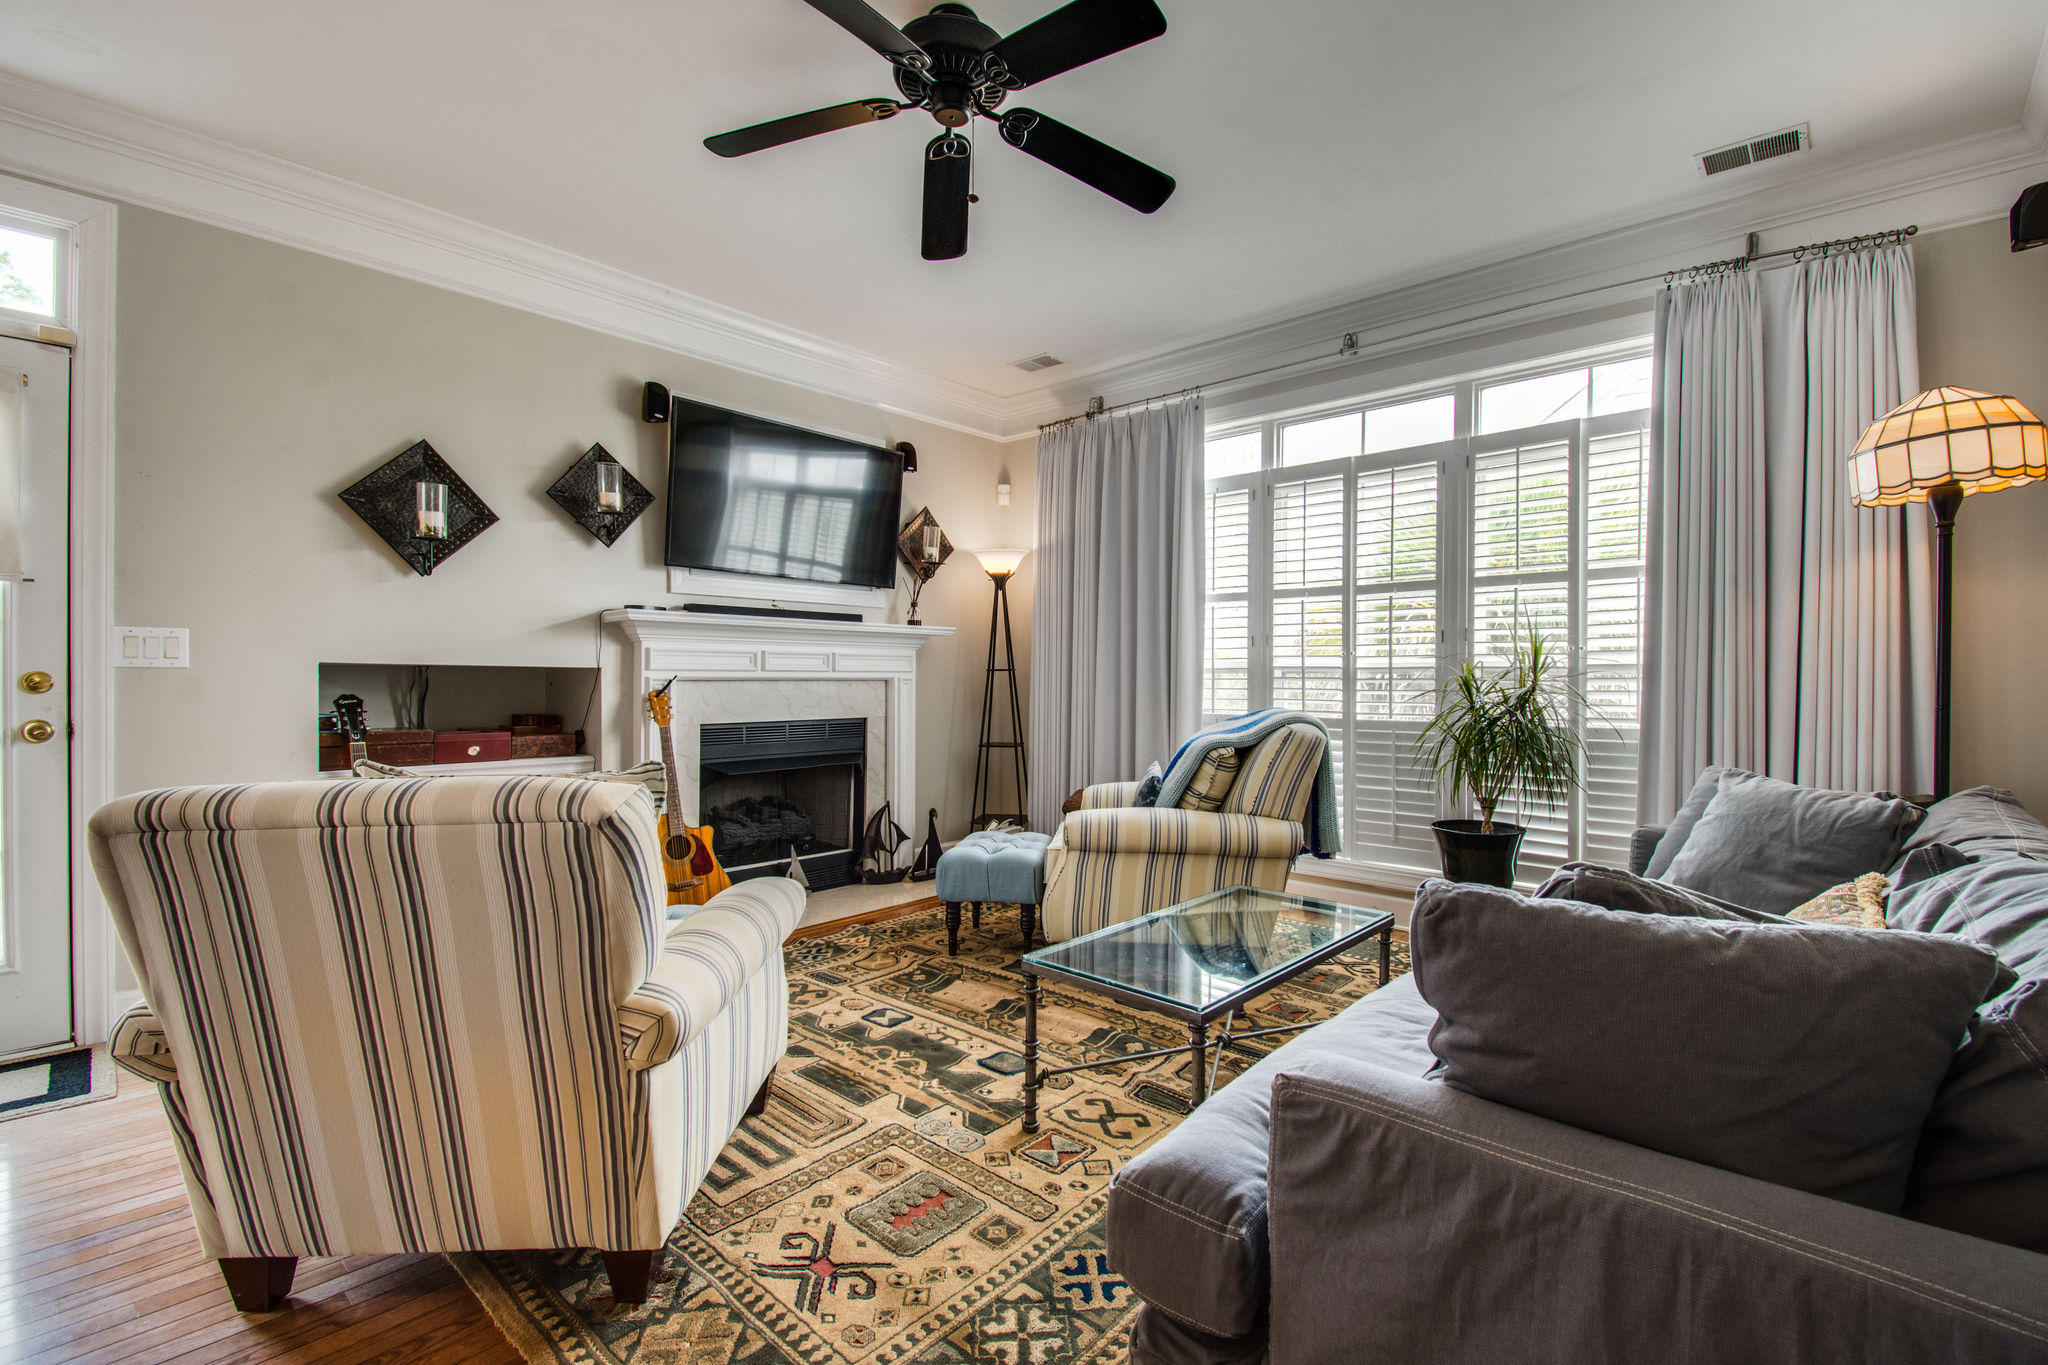 Rivertowne On The Wando Homes For Sale - 2226 Marsh, Mount Pleasant, SC - 16